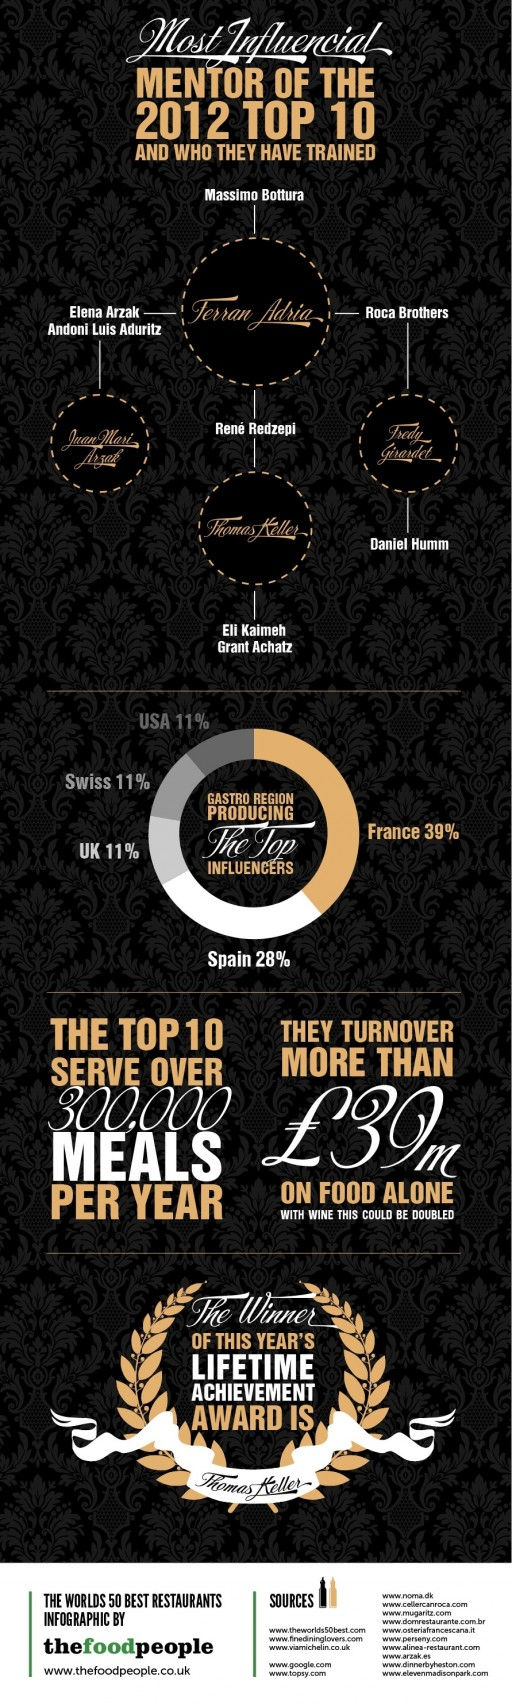 50-BEST-RESTAURANTS-2012-FACTS-AND-FIGURES-IV